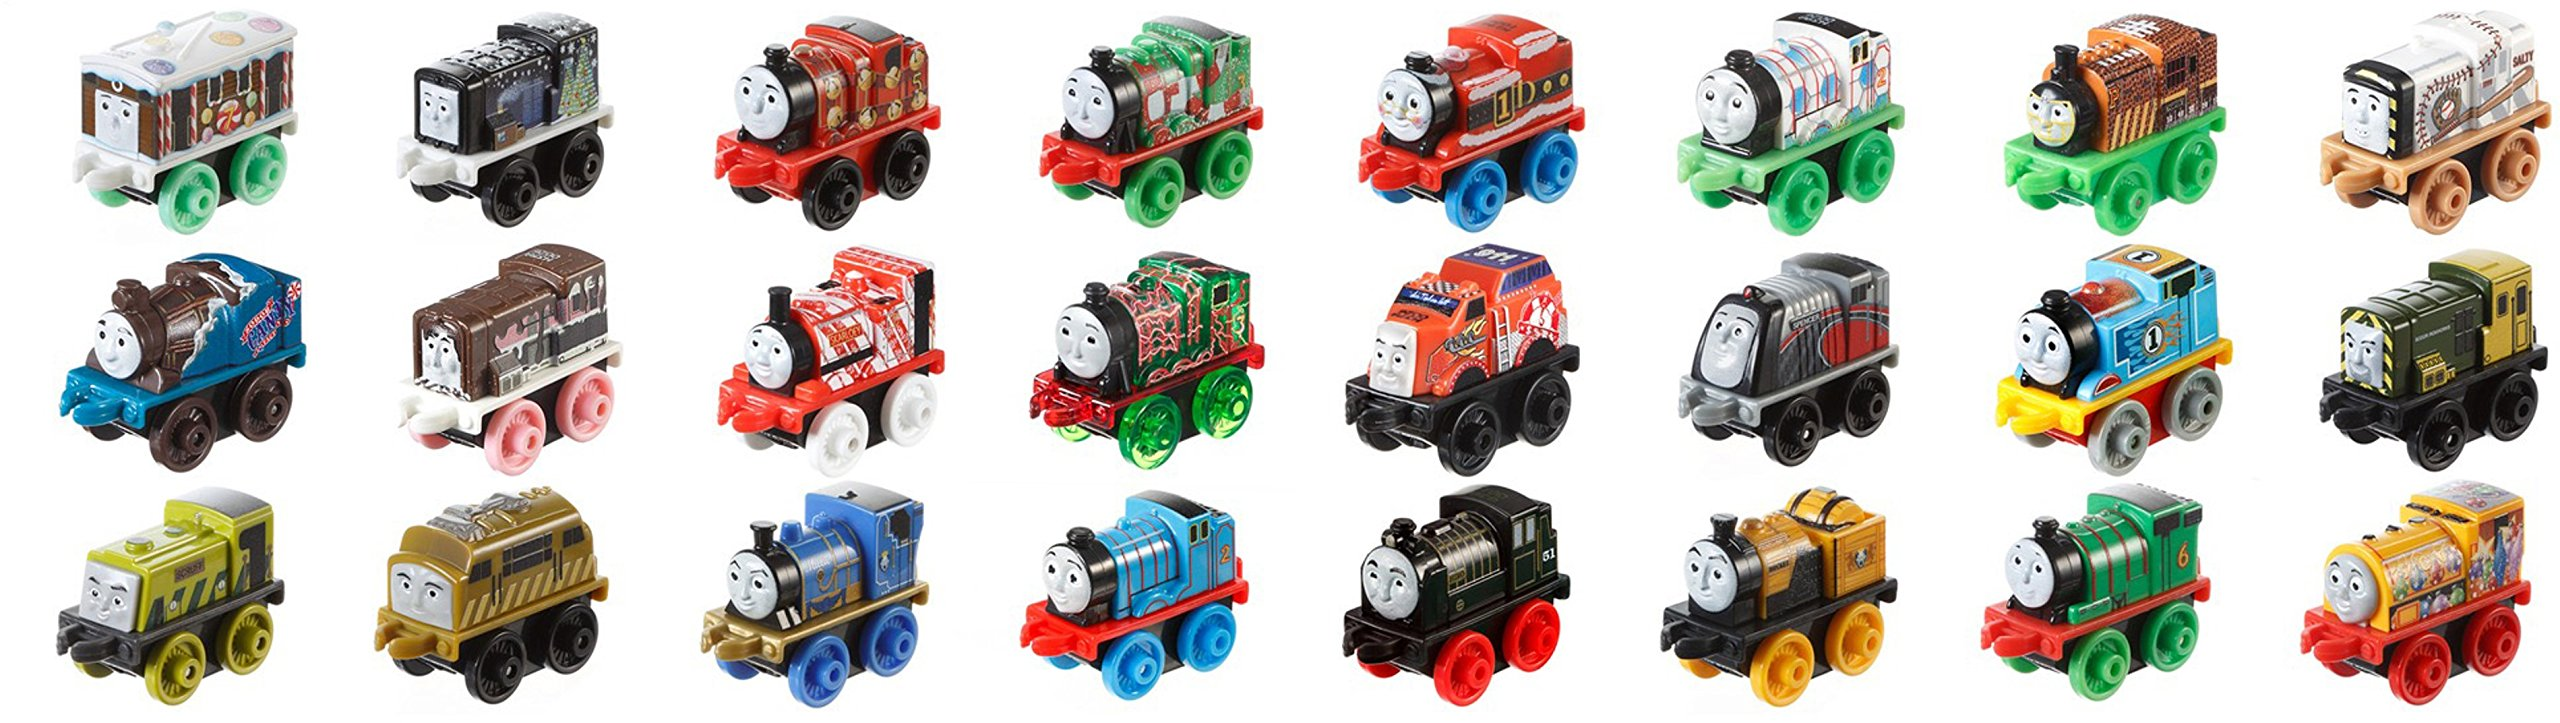 Thomas & Friends Fisher-Price MINIS, Advent Calendar by Thomas & Friends (Image #2)